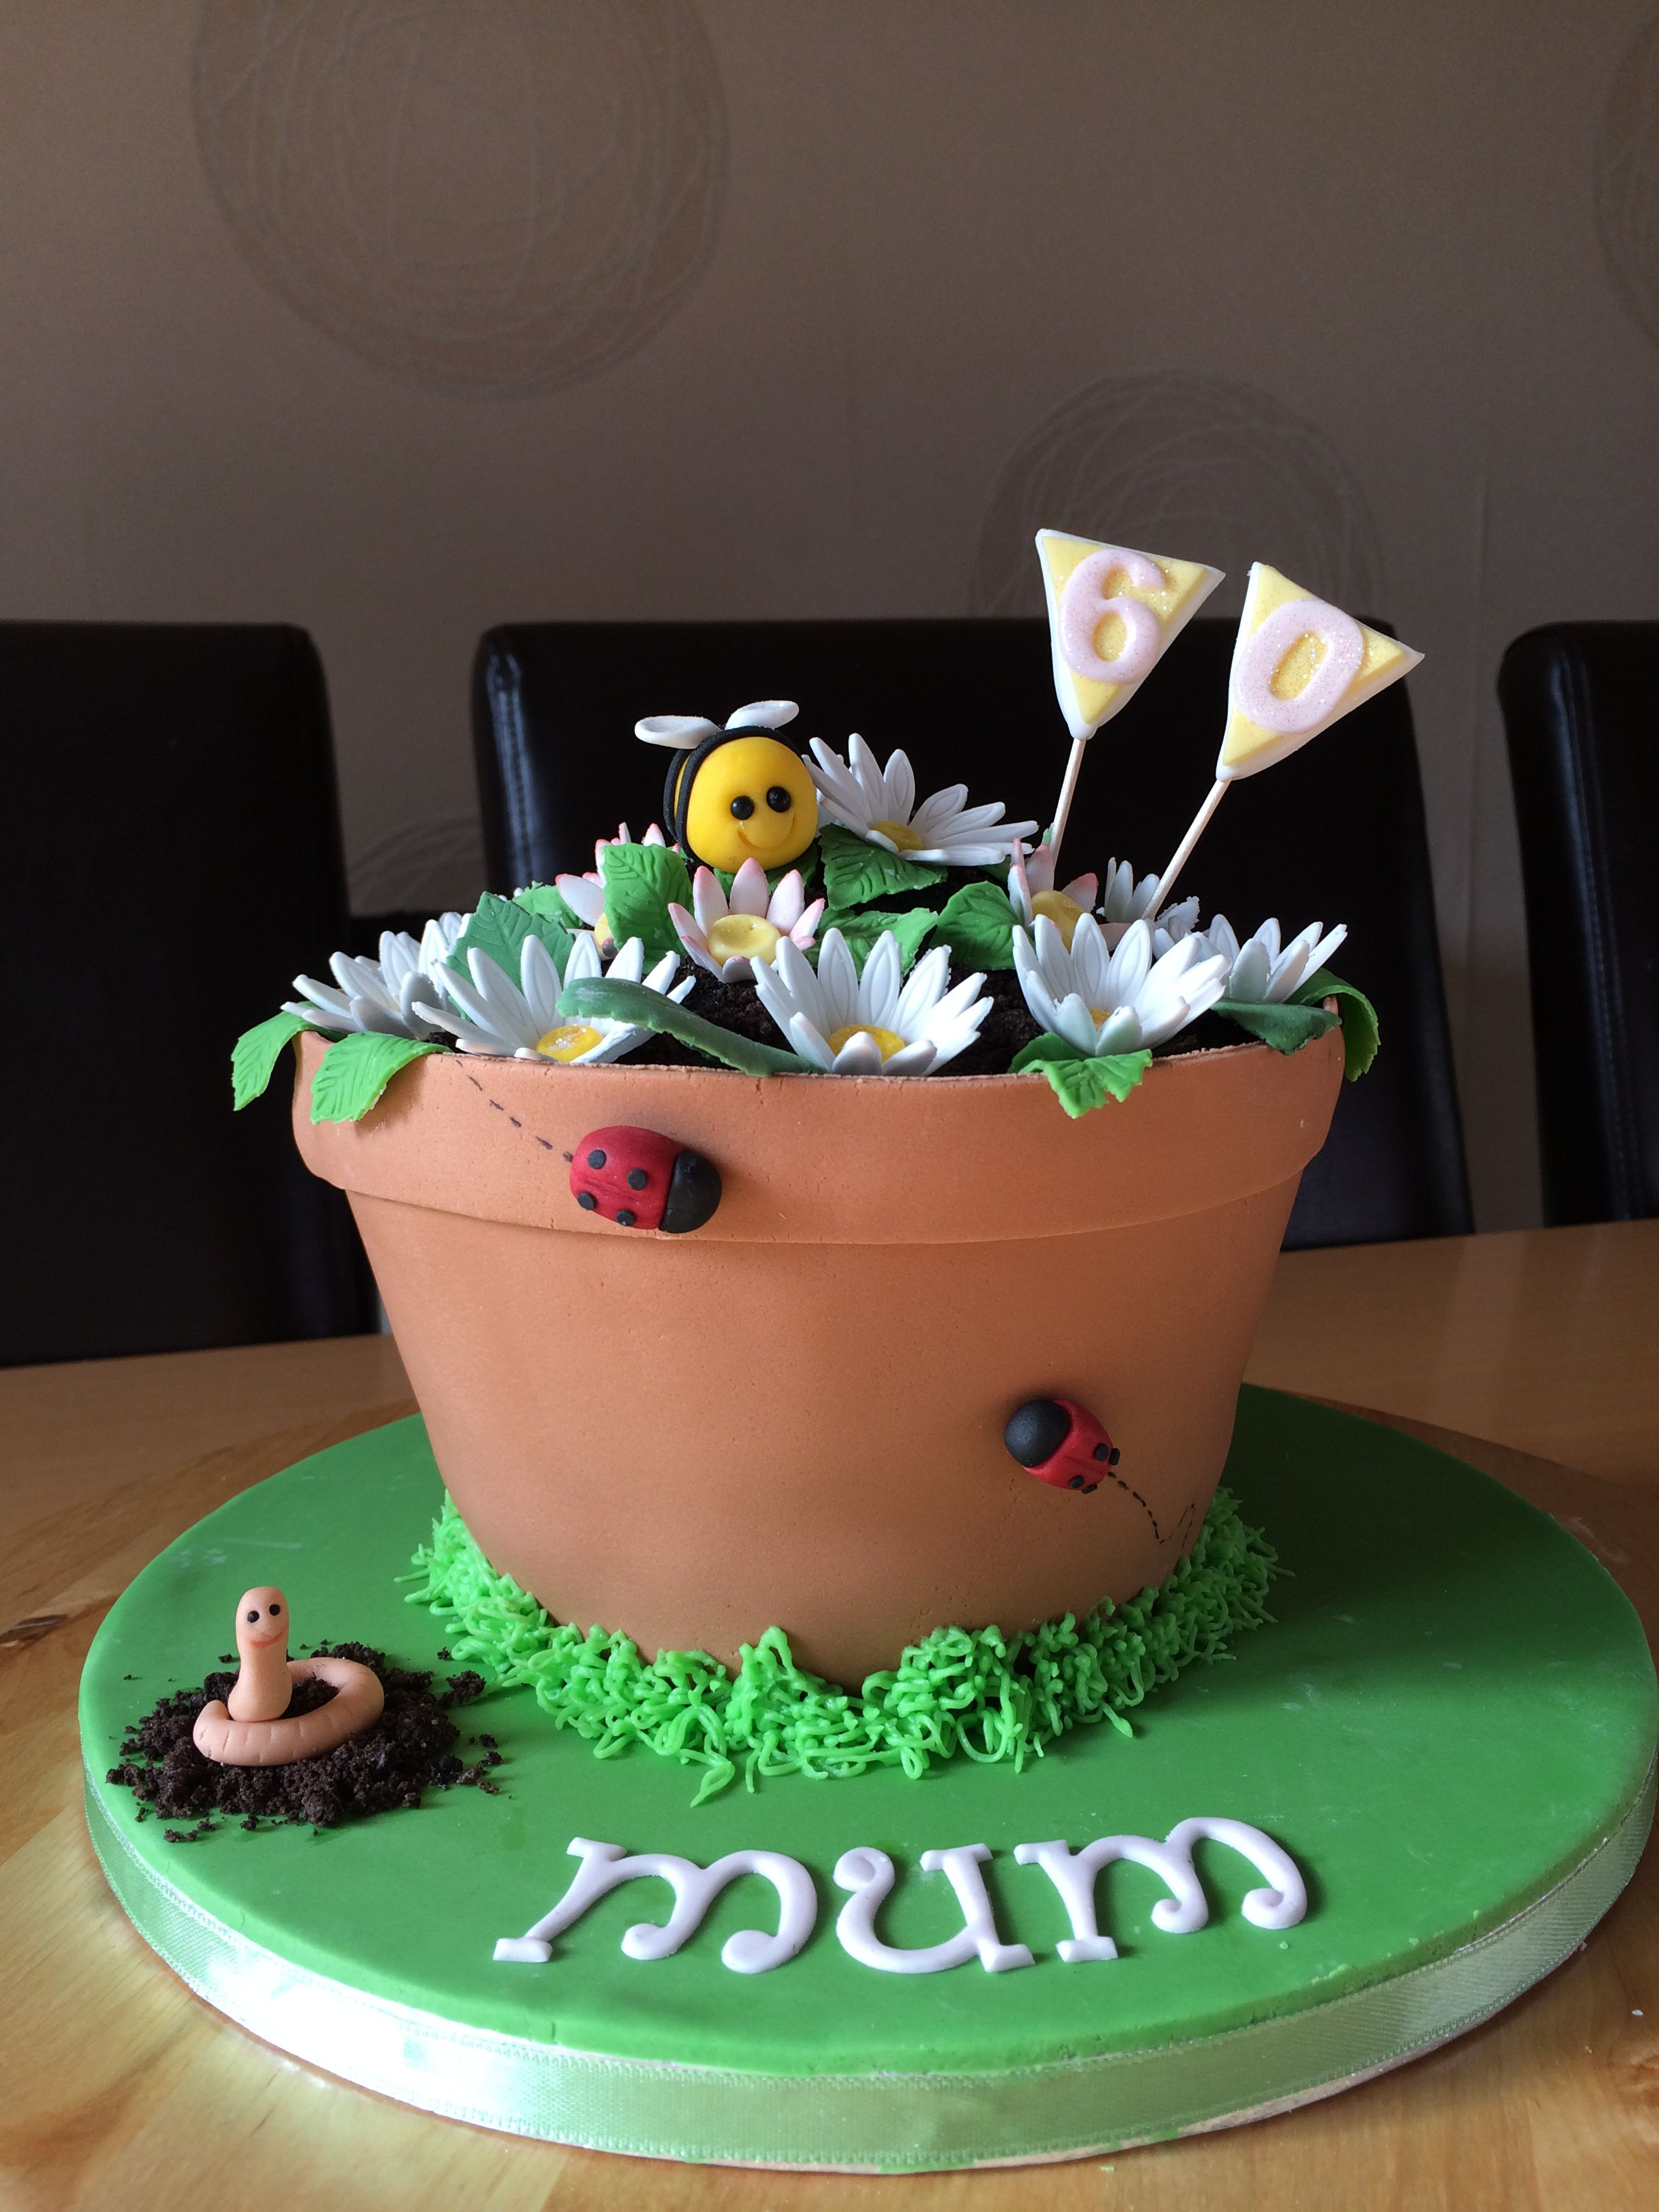 Flower pot cake all edible (With images) Birthday cake